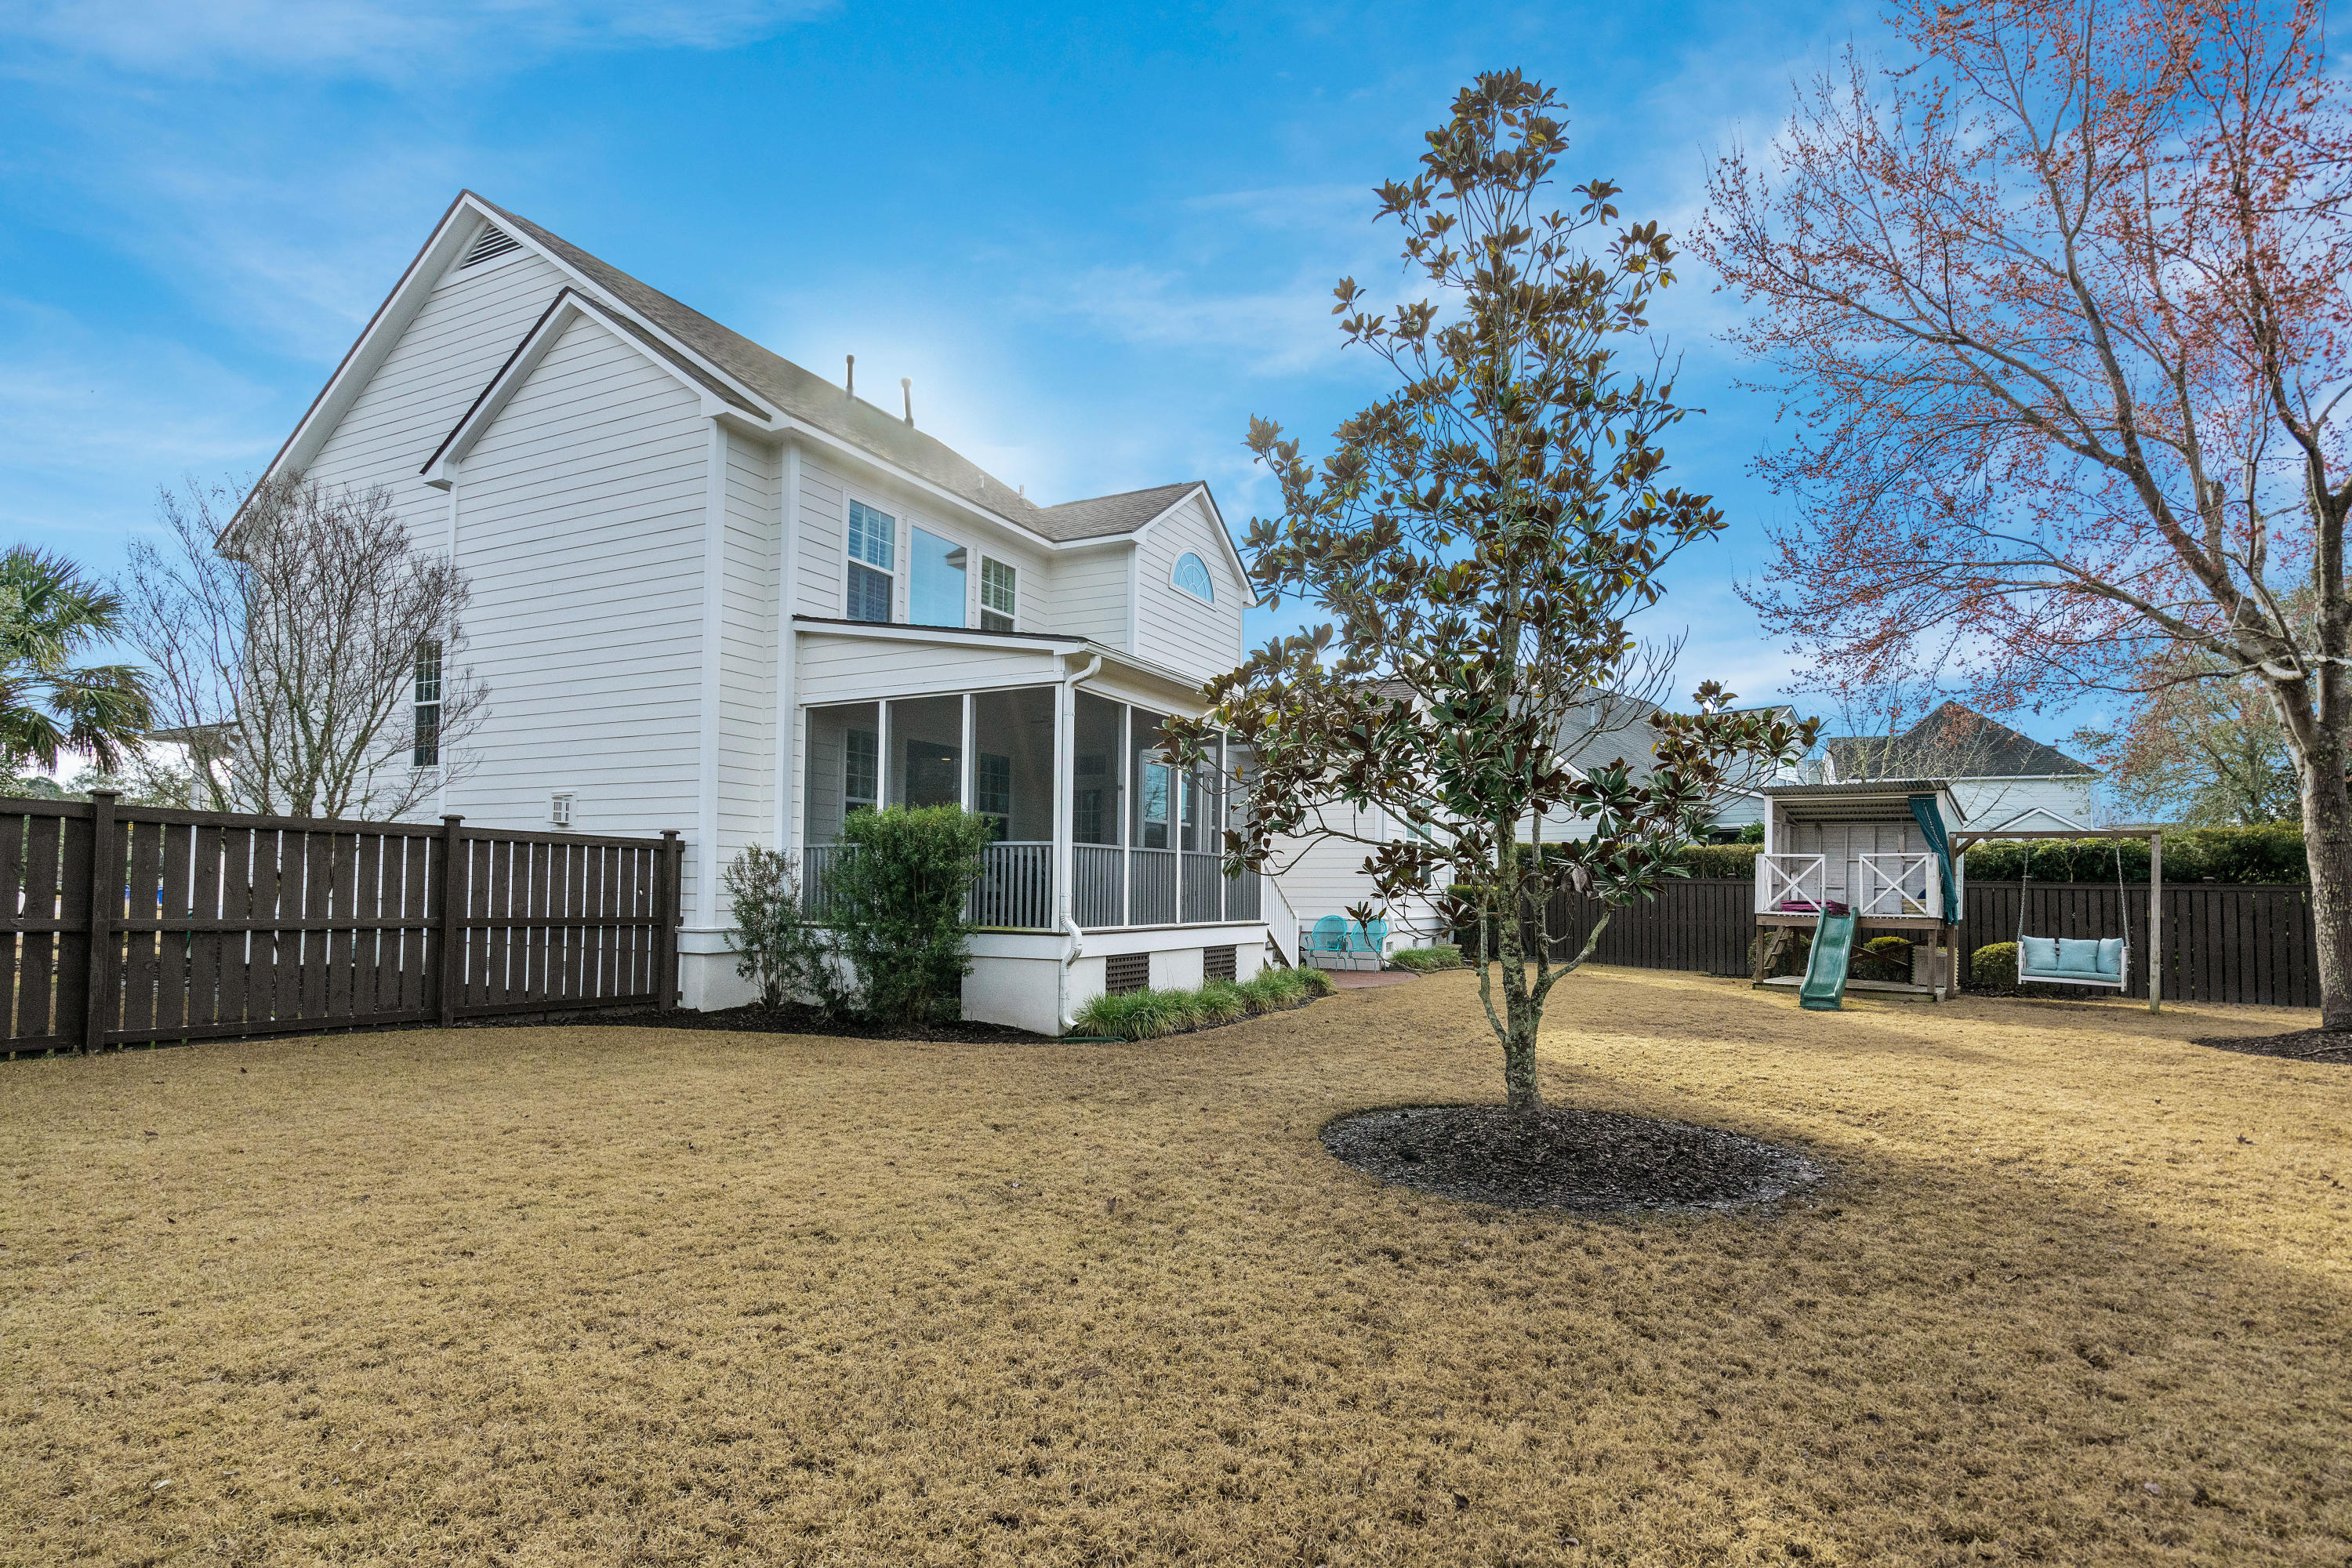 Dunes West Homes For Sale - 1600 Willowick, Mount Pleasant, SC - 2